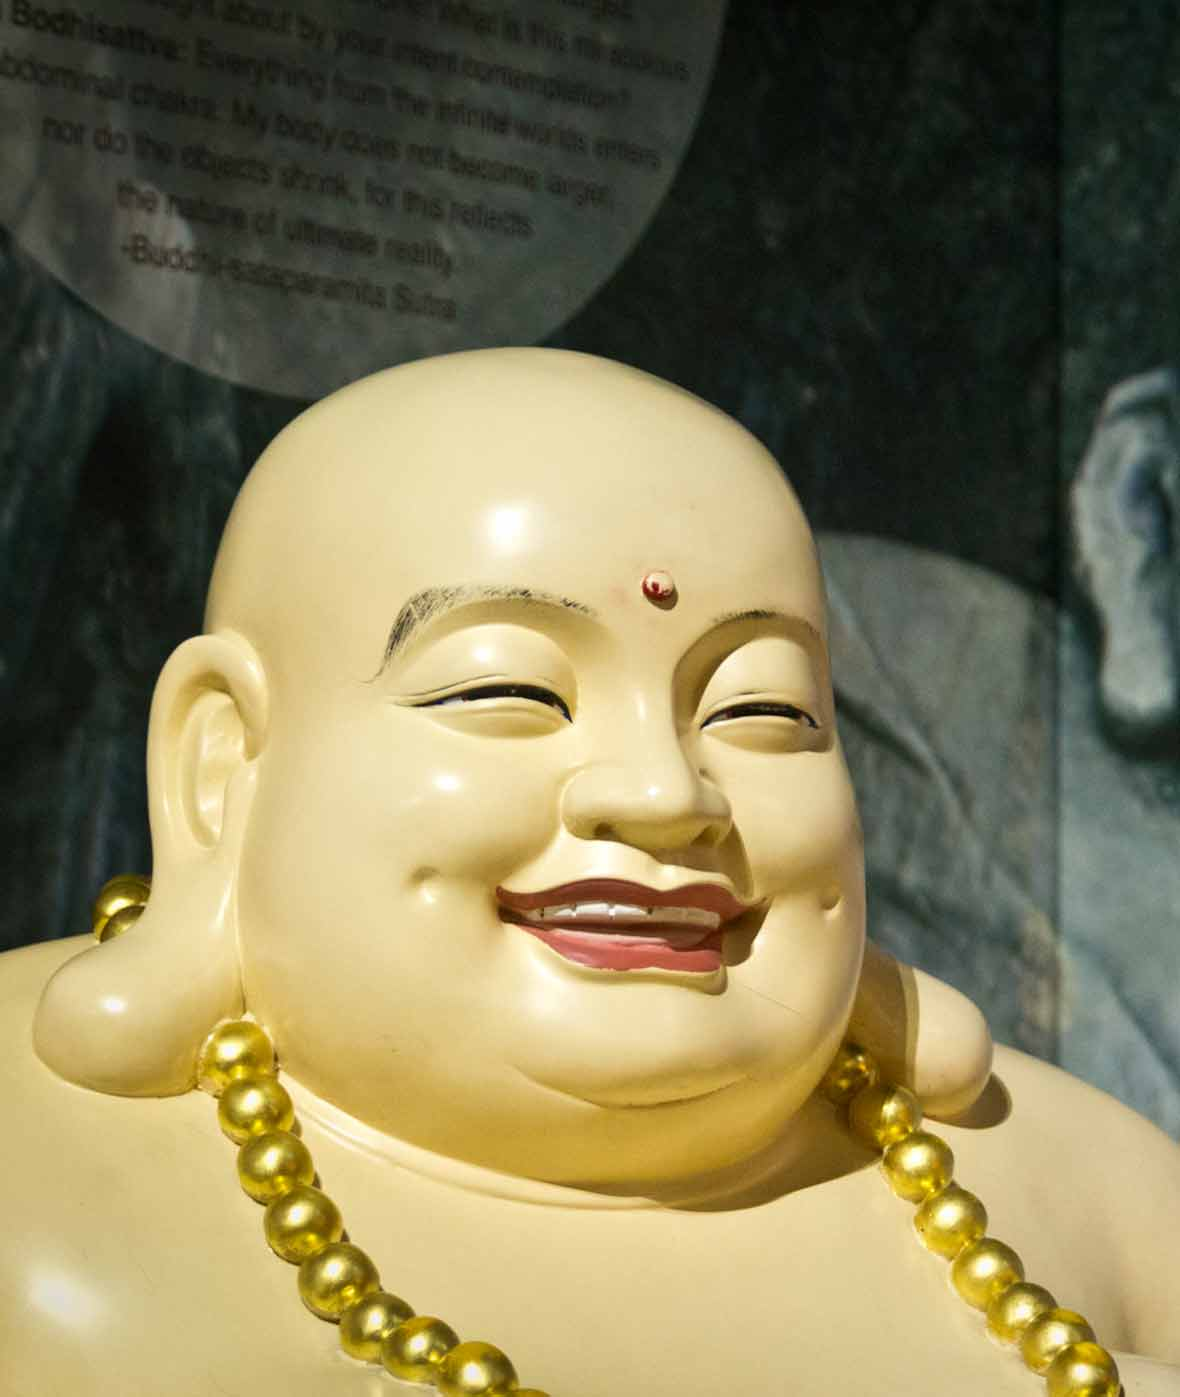 A statue of a fat smiling Buddha